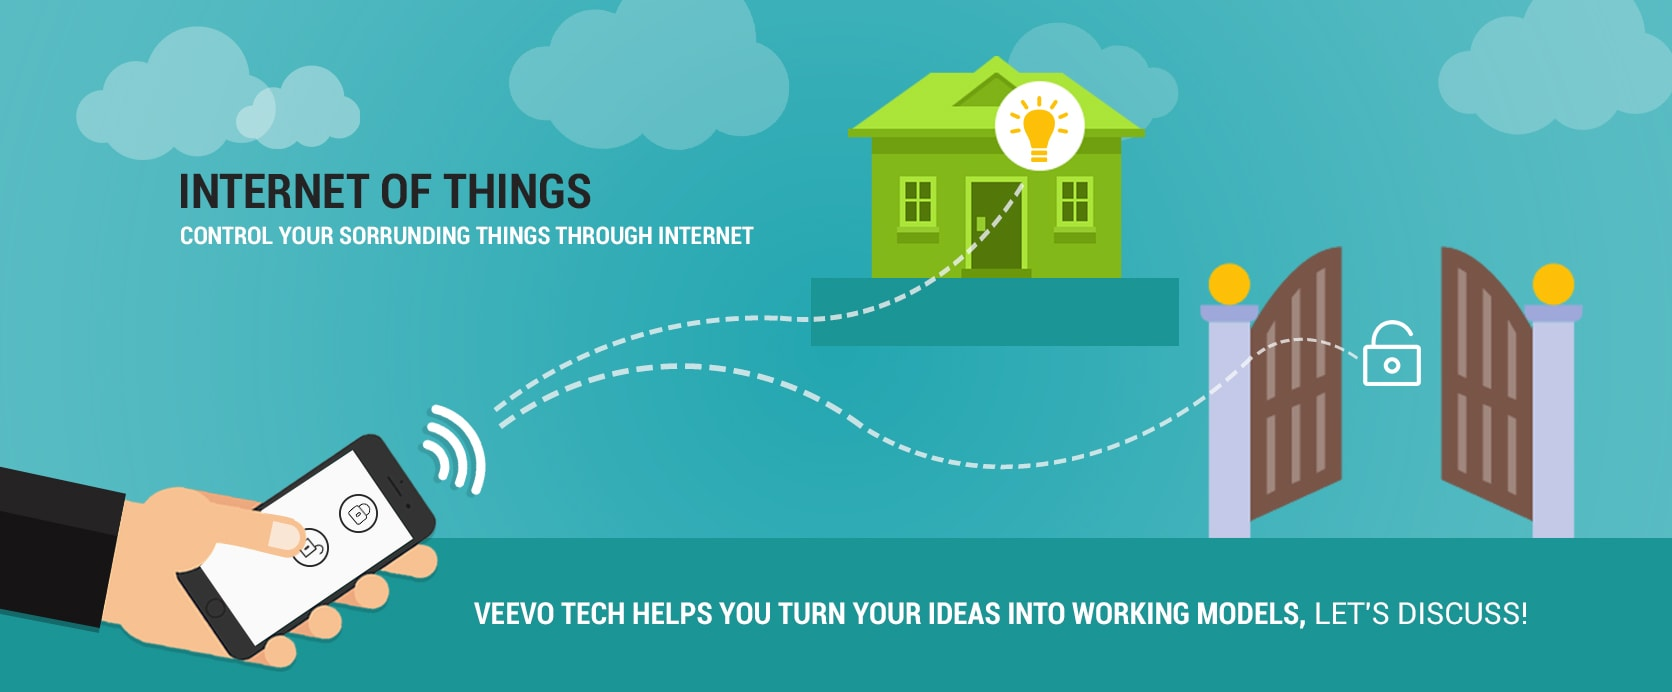 Veevo Internet of things